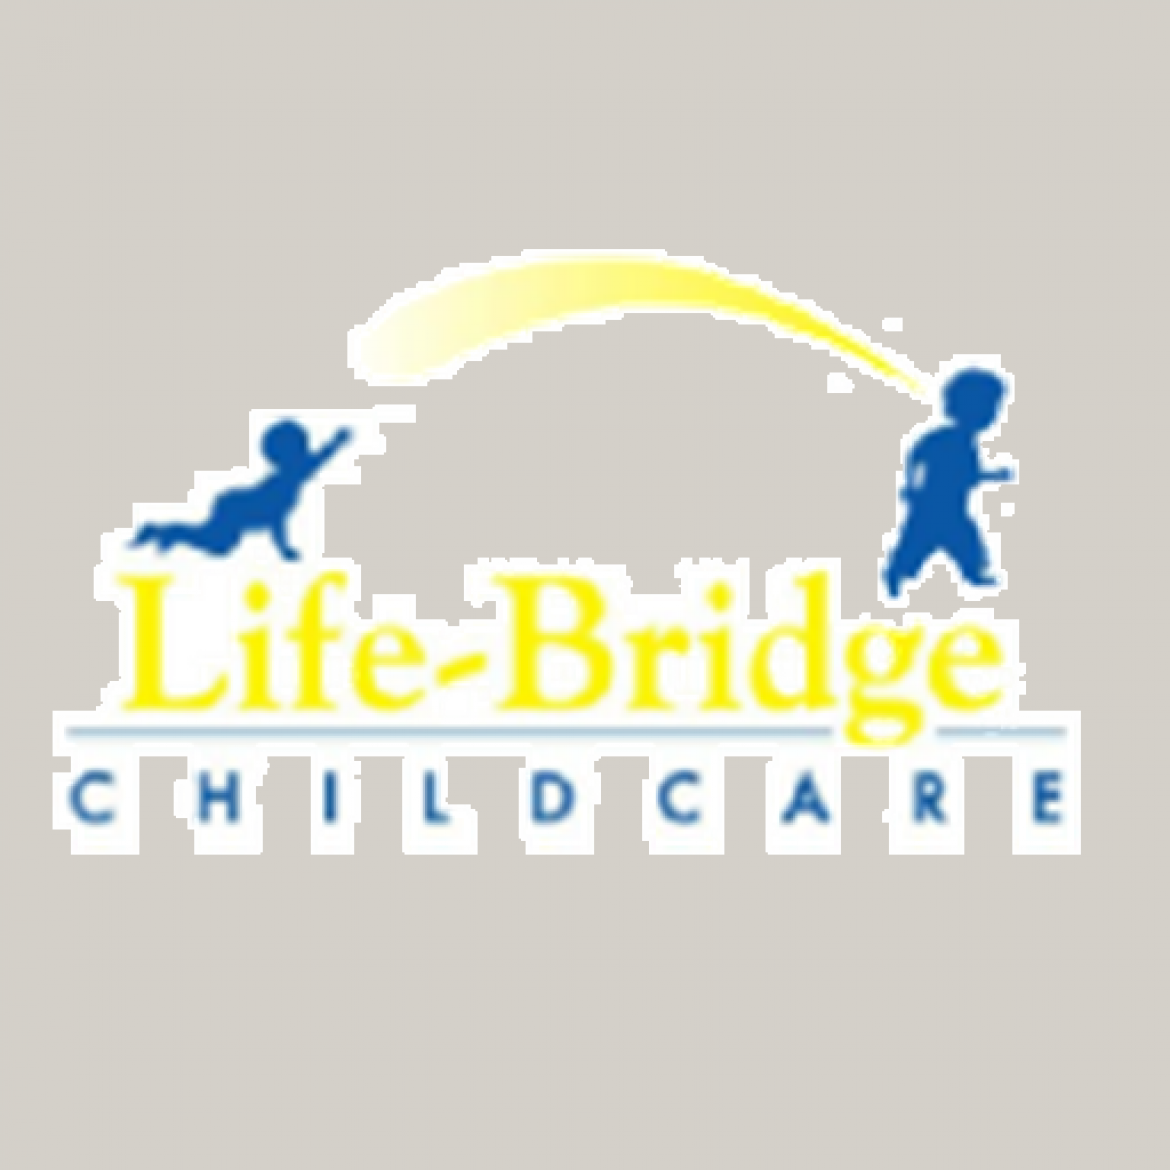 life_bridge_icon_b.png